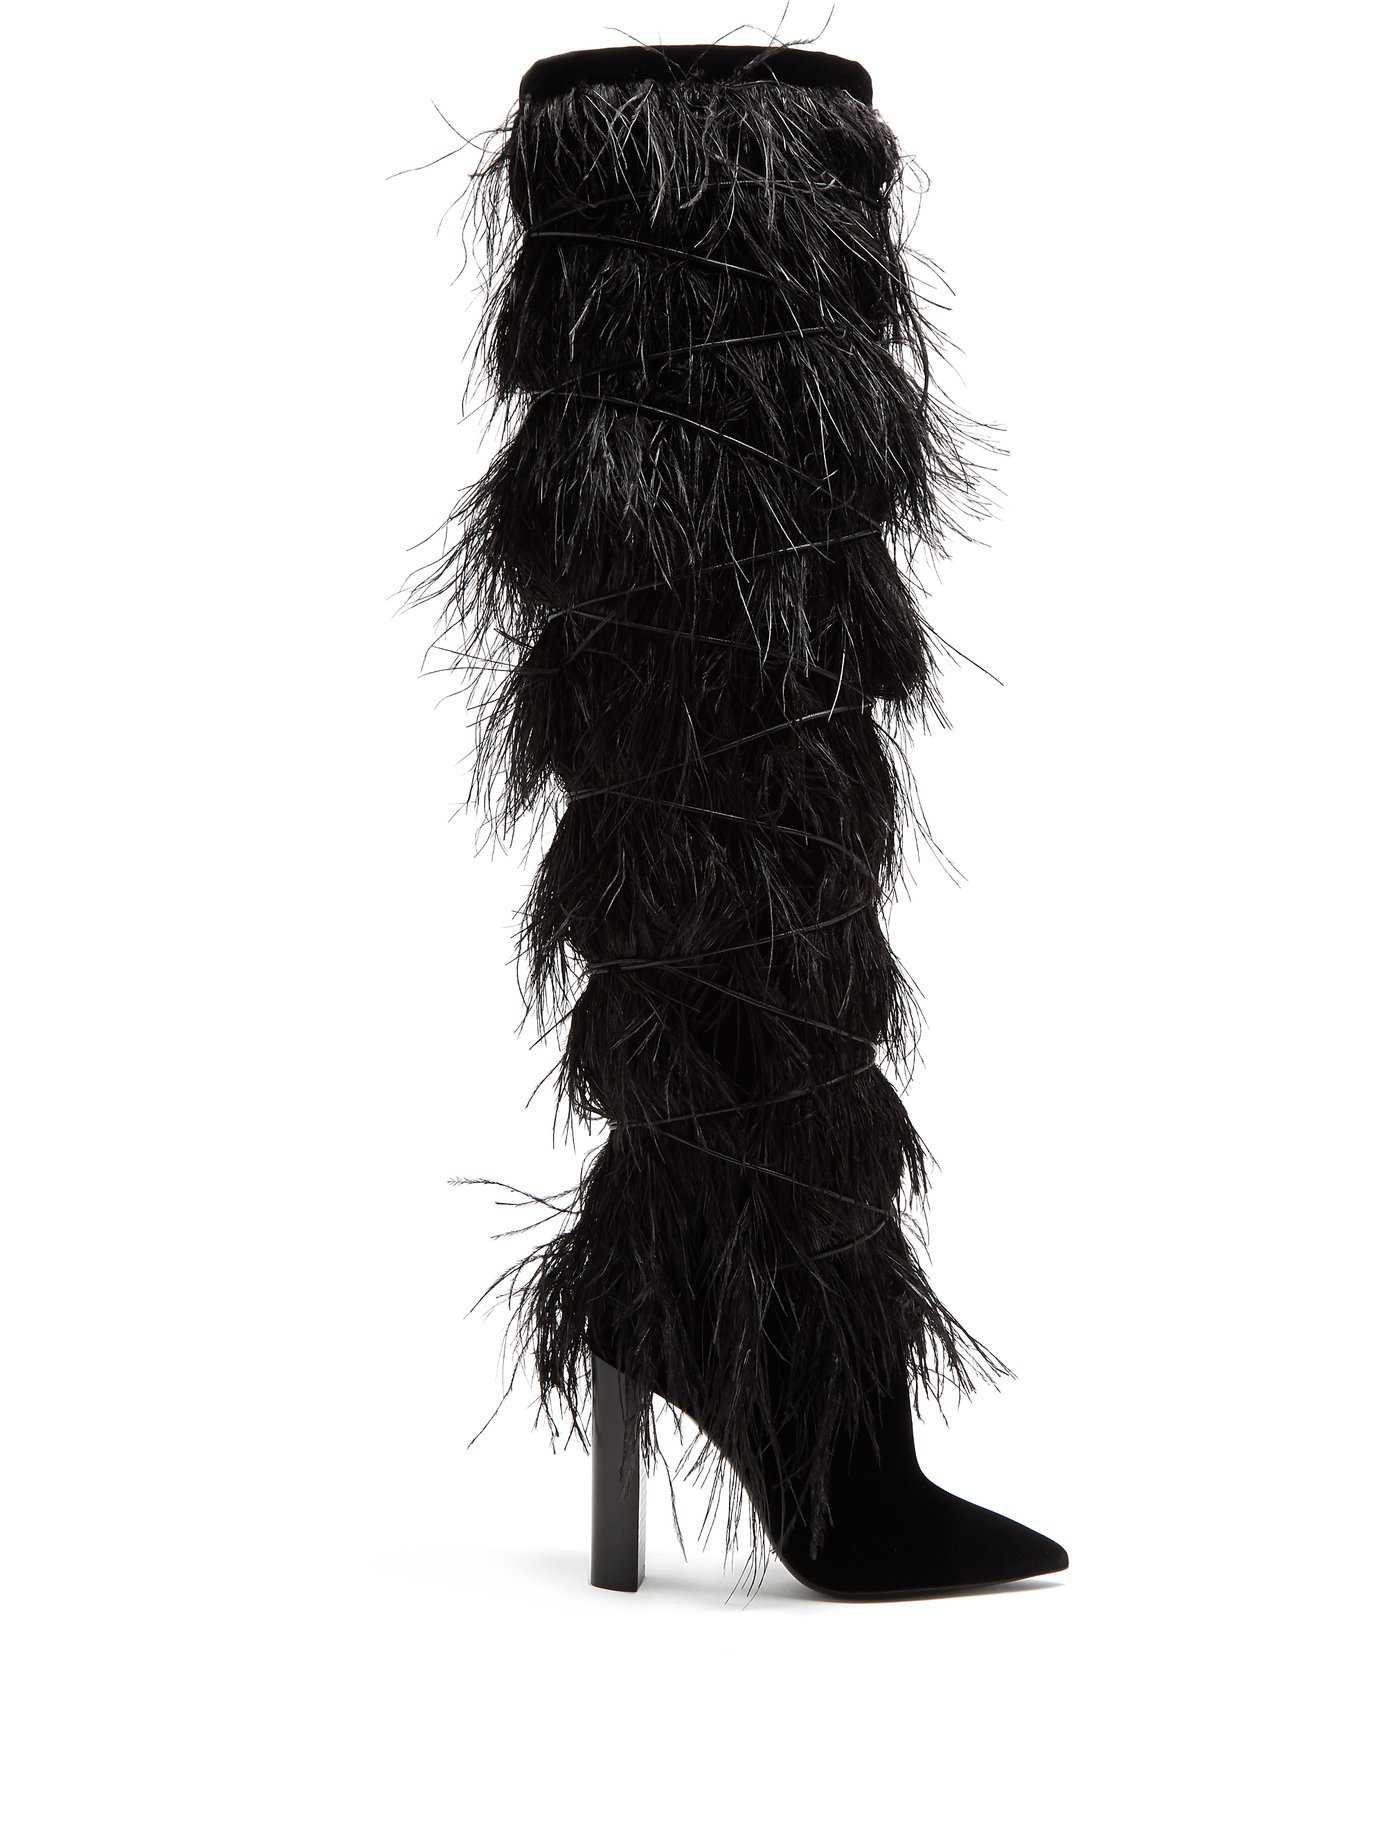 Yeti feather-embellished over-the-knee boots | Saint Laurent | MATCHESFASHION.COM US